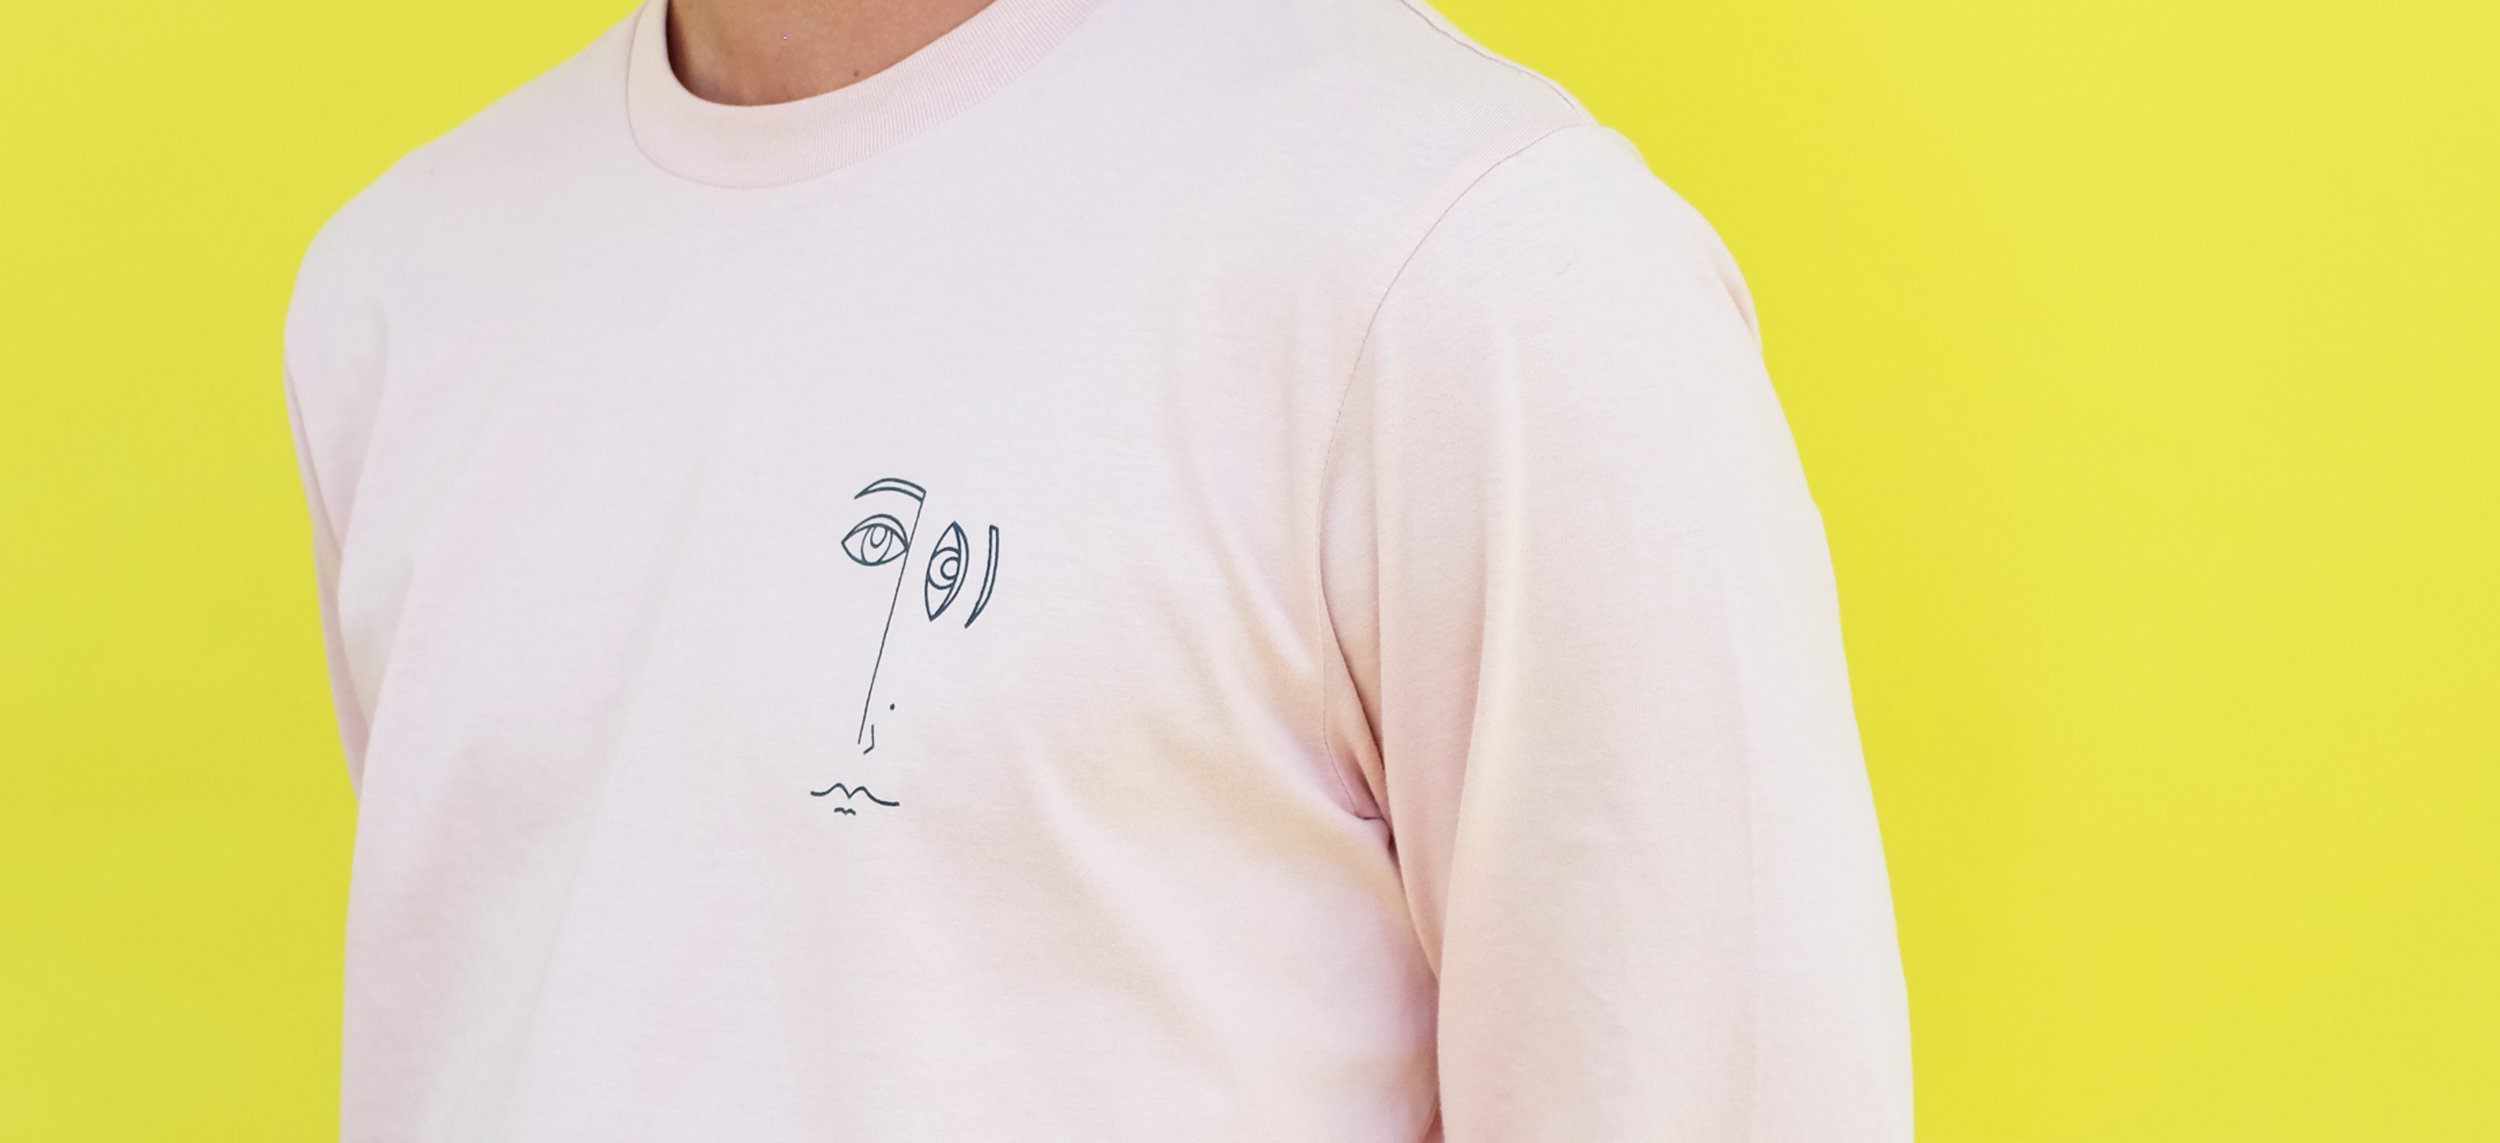 'Abstracto' Tees - A new collaboration with Gaby Gebo.Built for comfort, these light pink shirts pop with picasso-esque character.